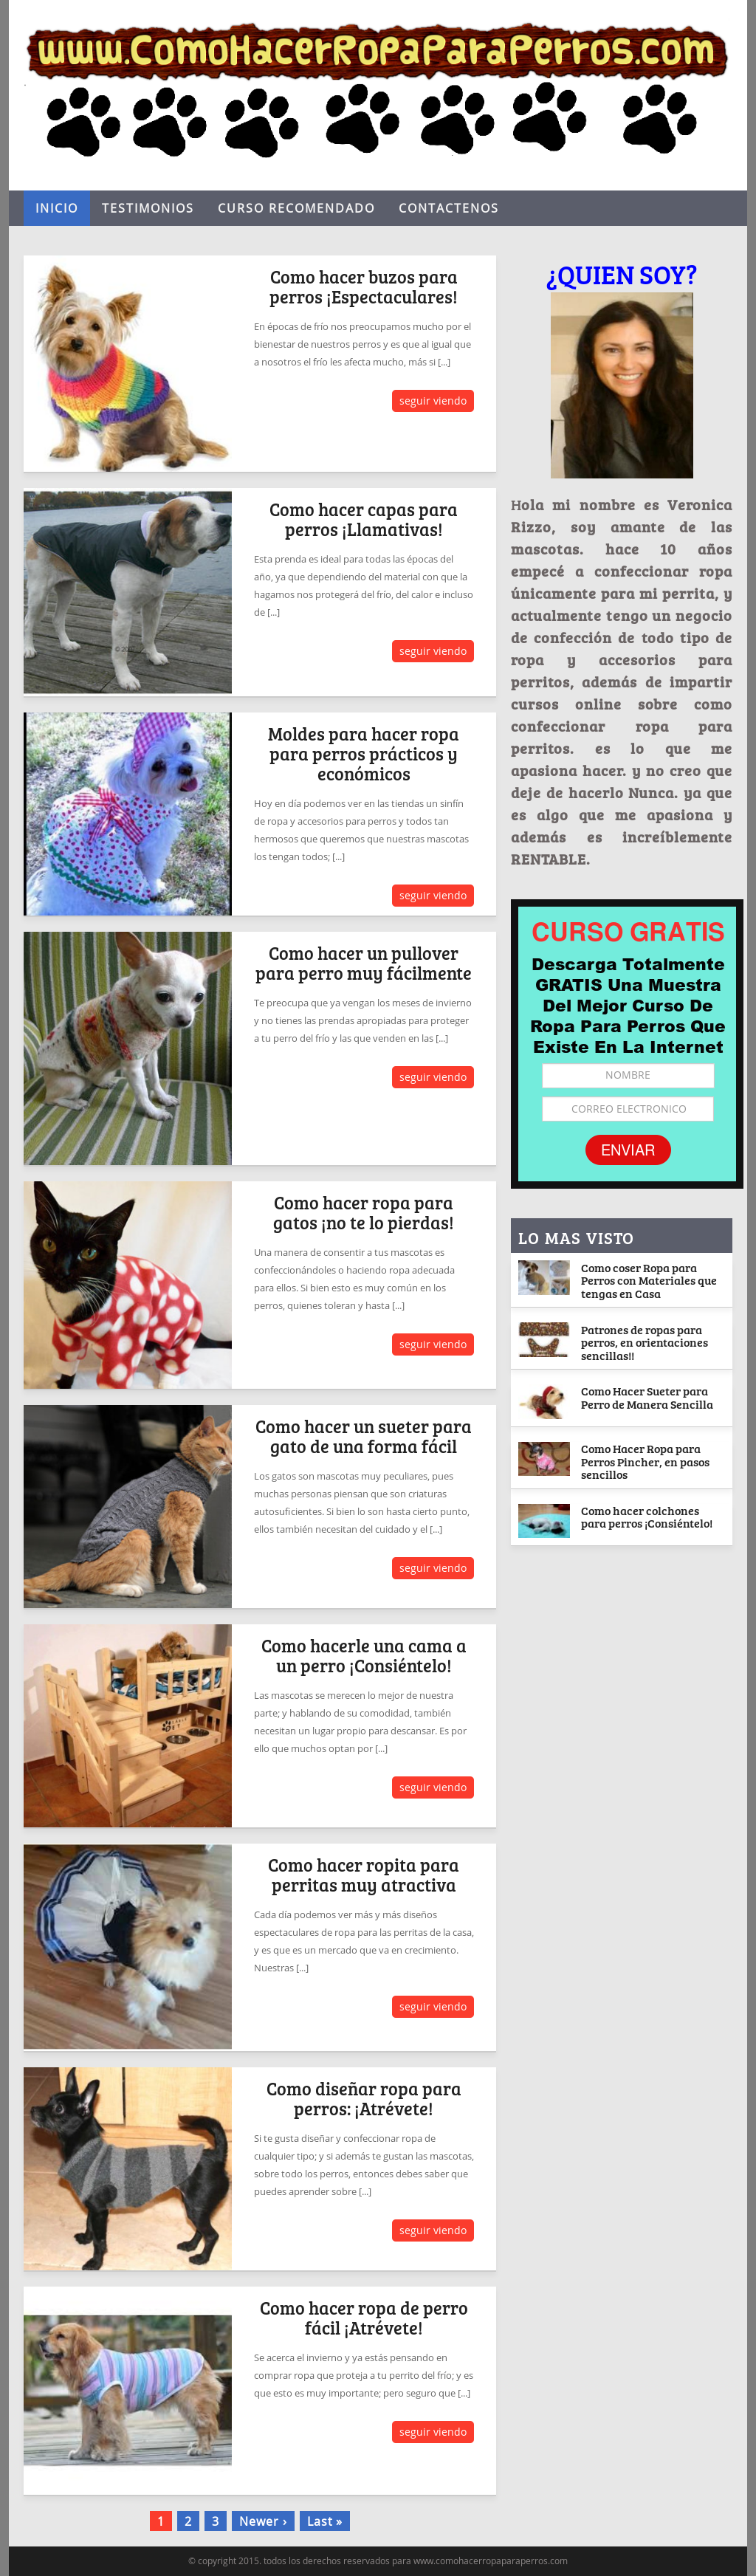 Como Hacer Ropa Para Perros Competitors, Revenue and Employees ...